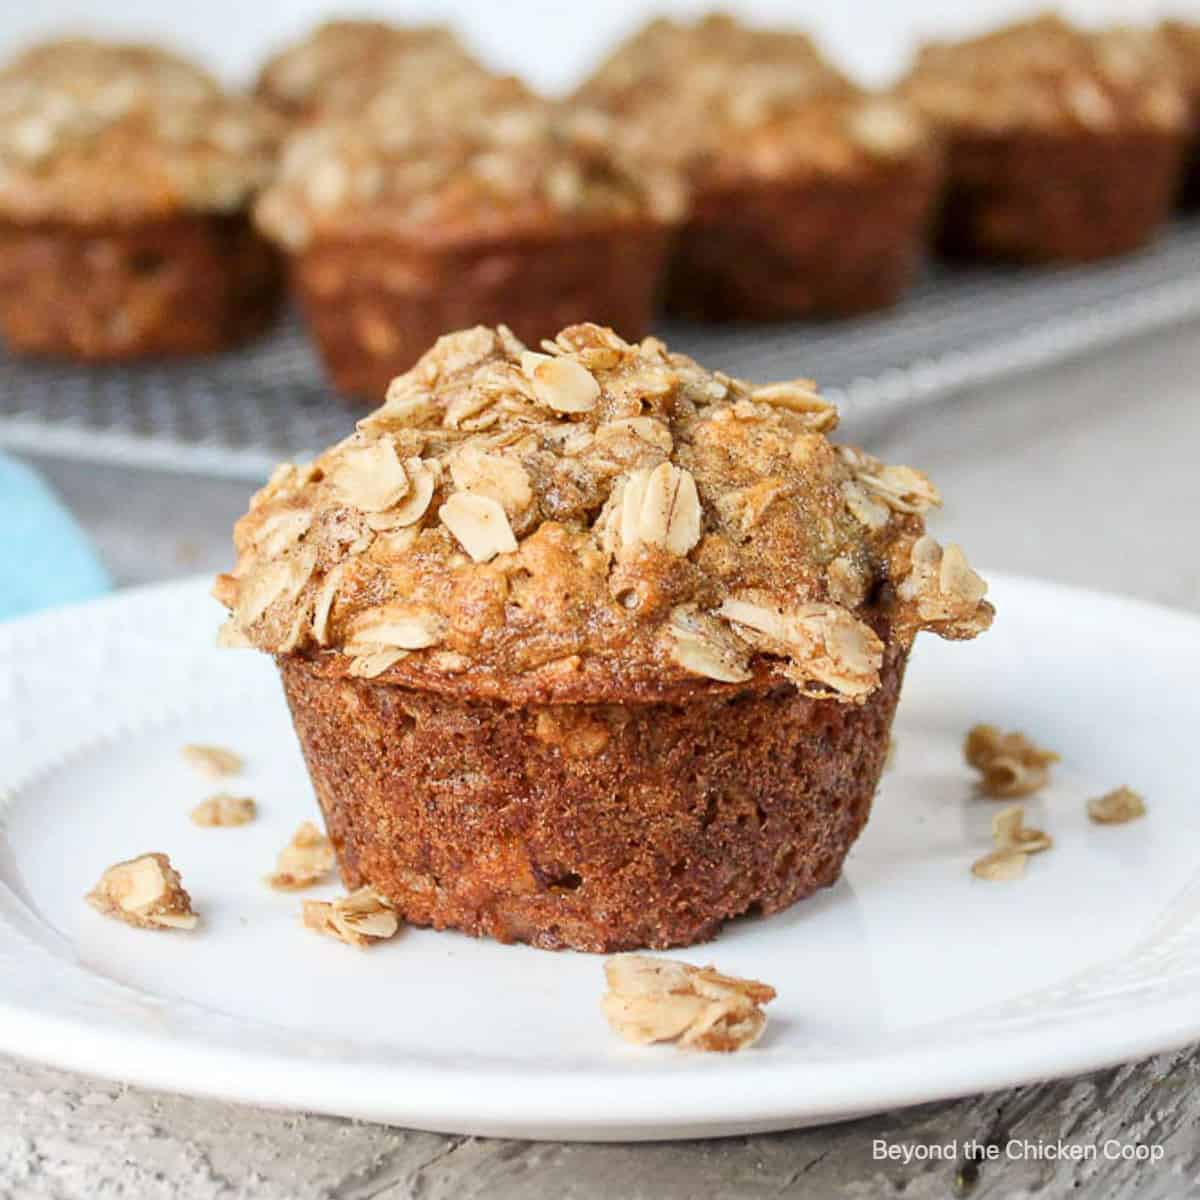 A single muffin topped with a crumbly topping on a plate.